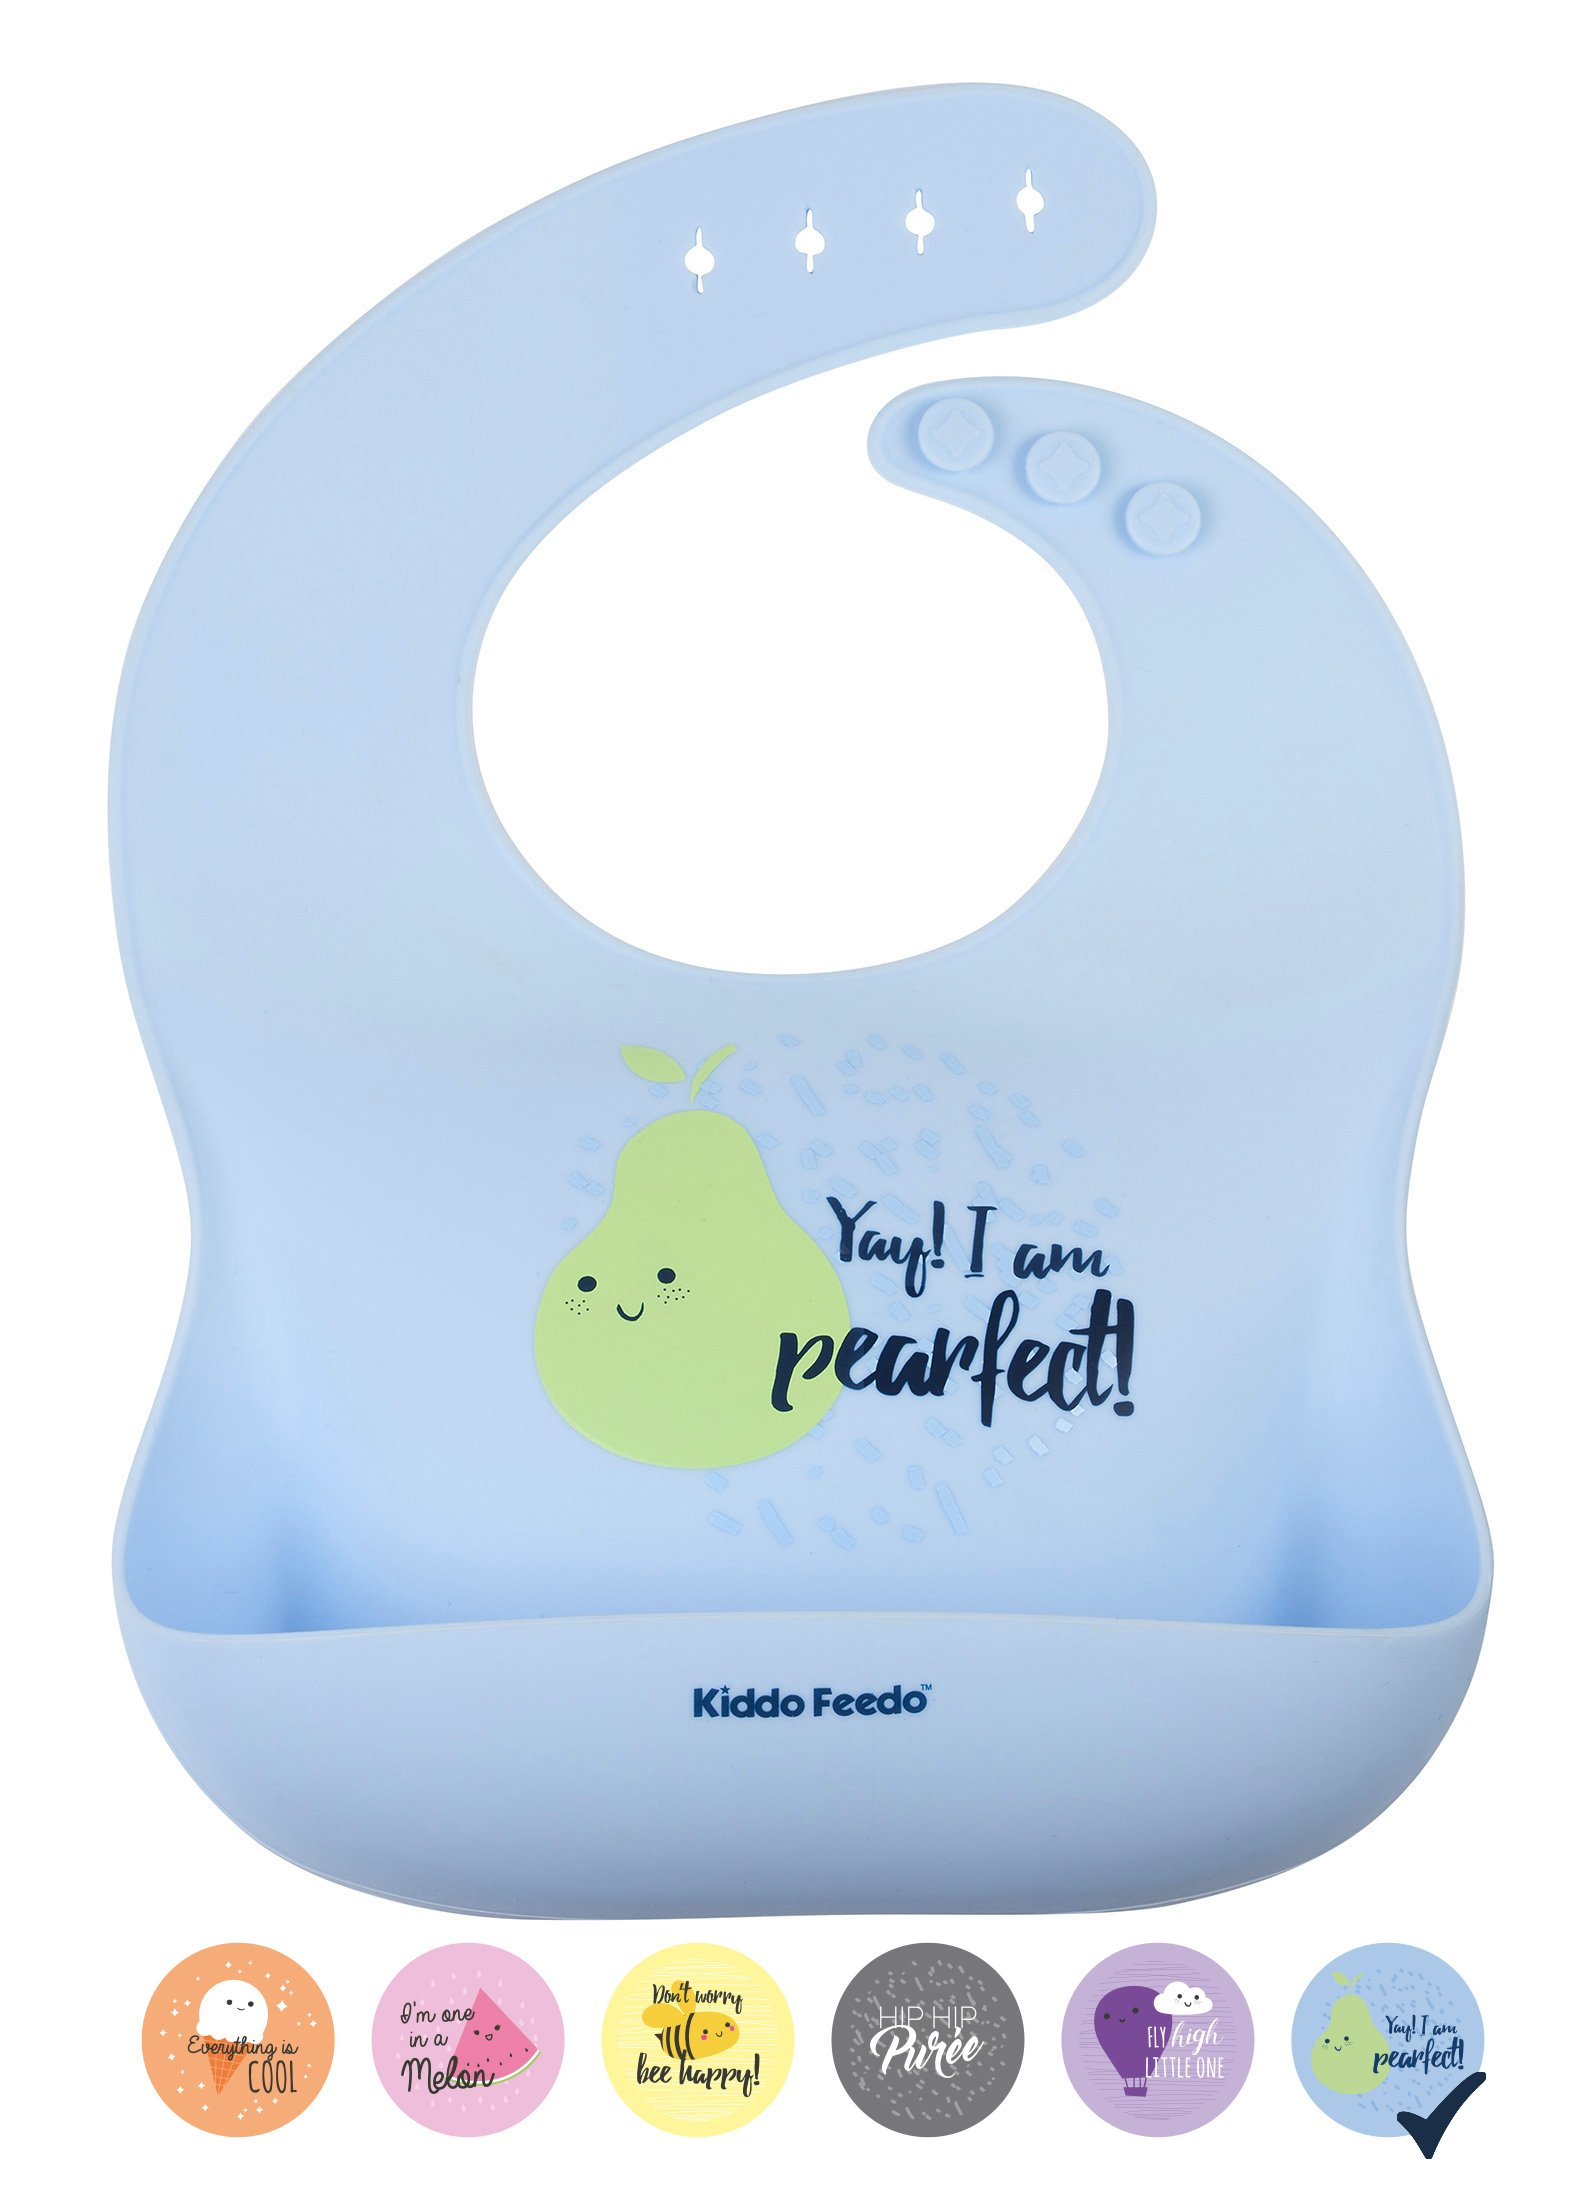 KIDDO FEEDO Baby Bib - 6 Cute Designs Available for Boy and Girl - Foldable with a Wide Catch-All Food Pouch - BPA Free - Blue